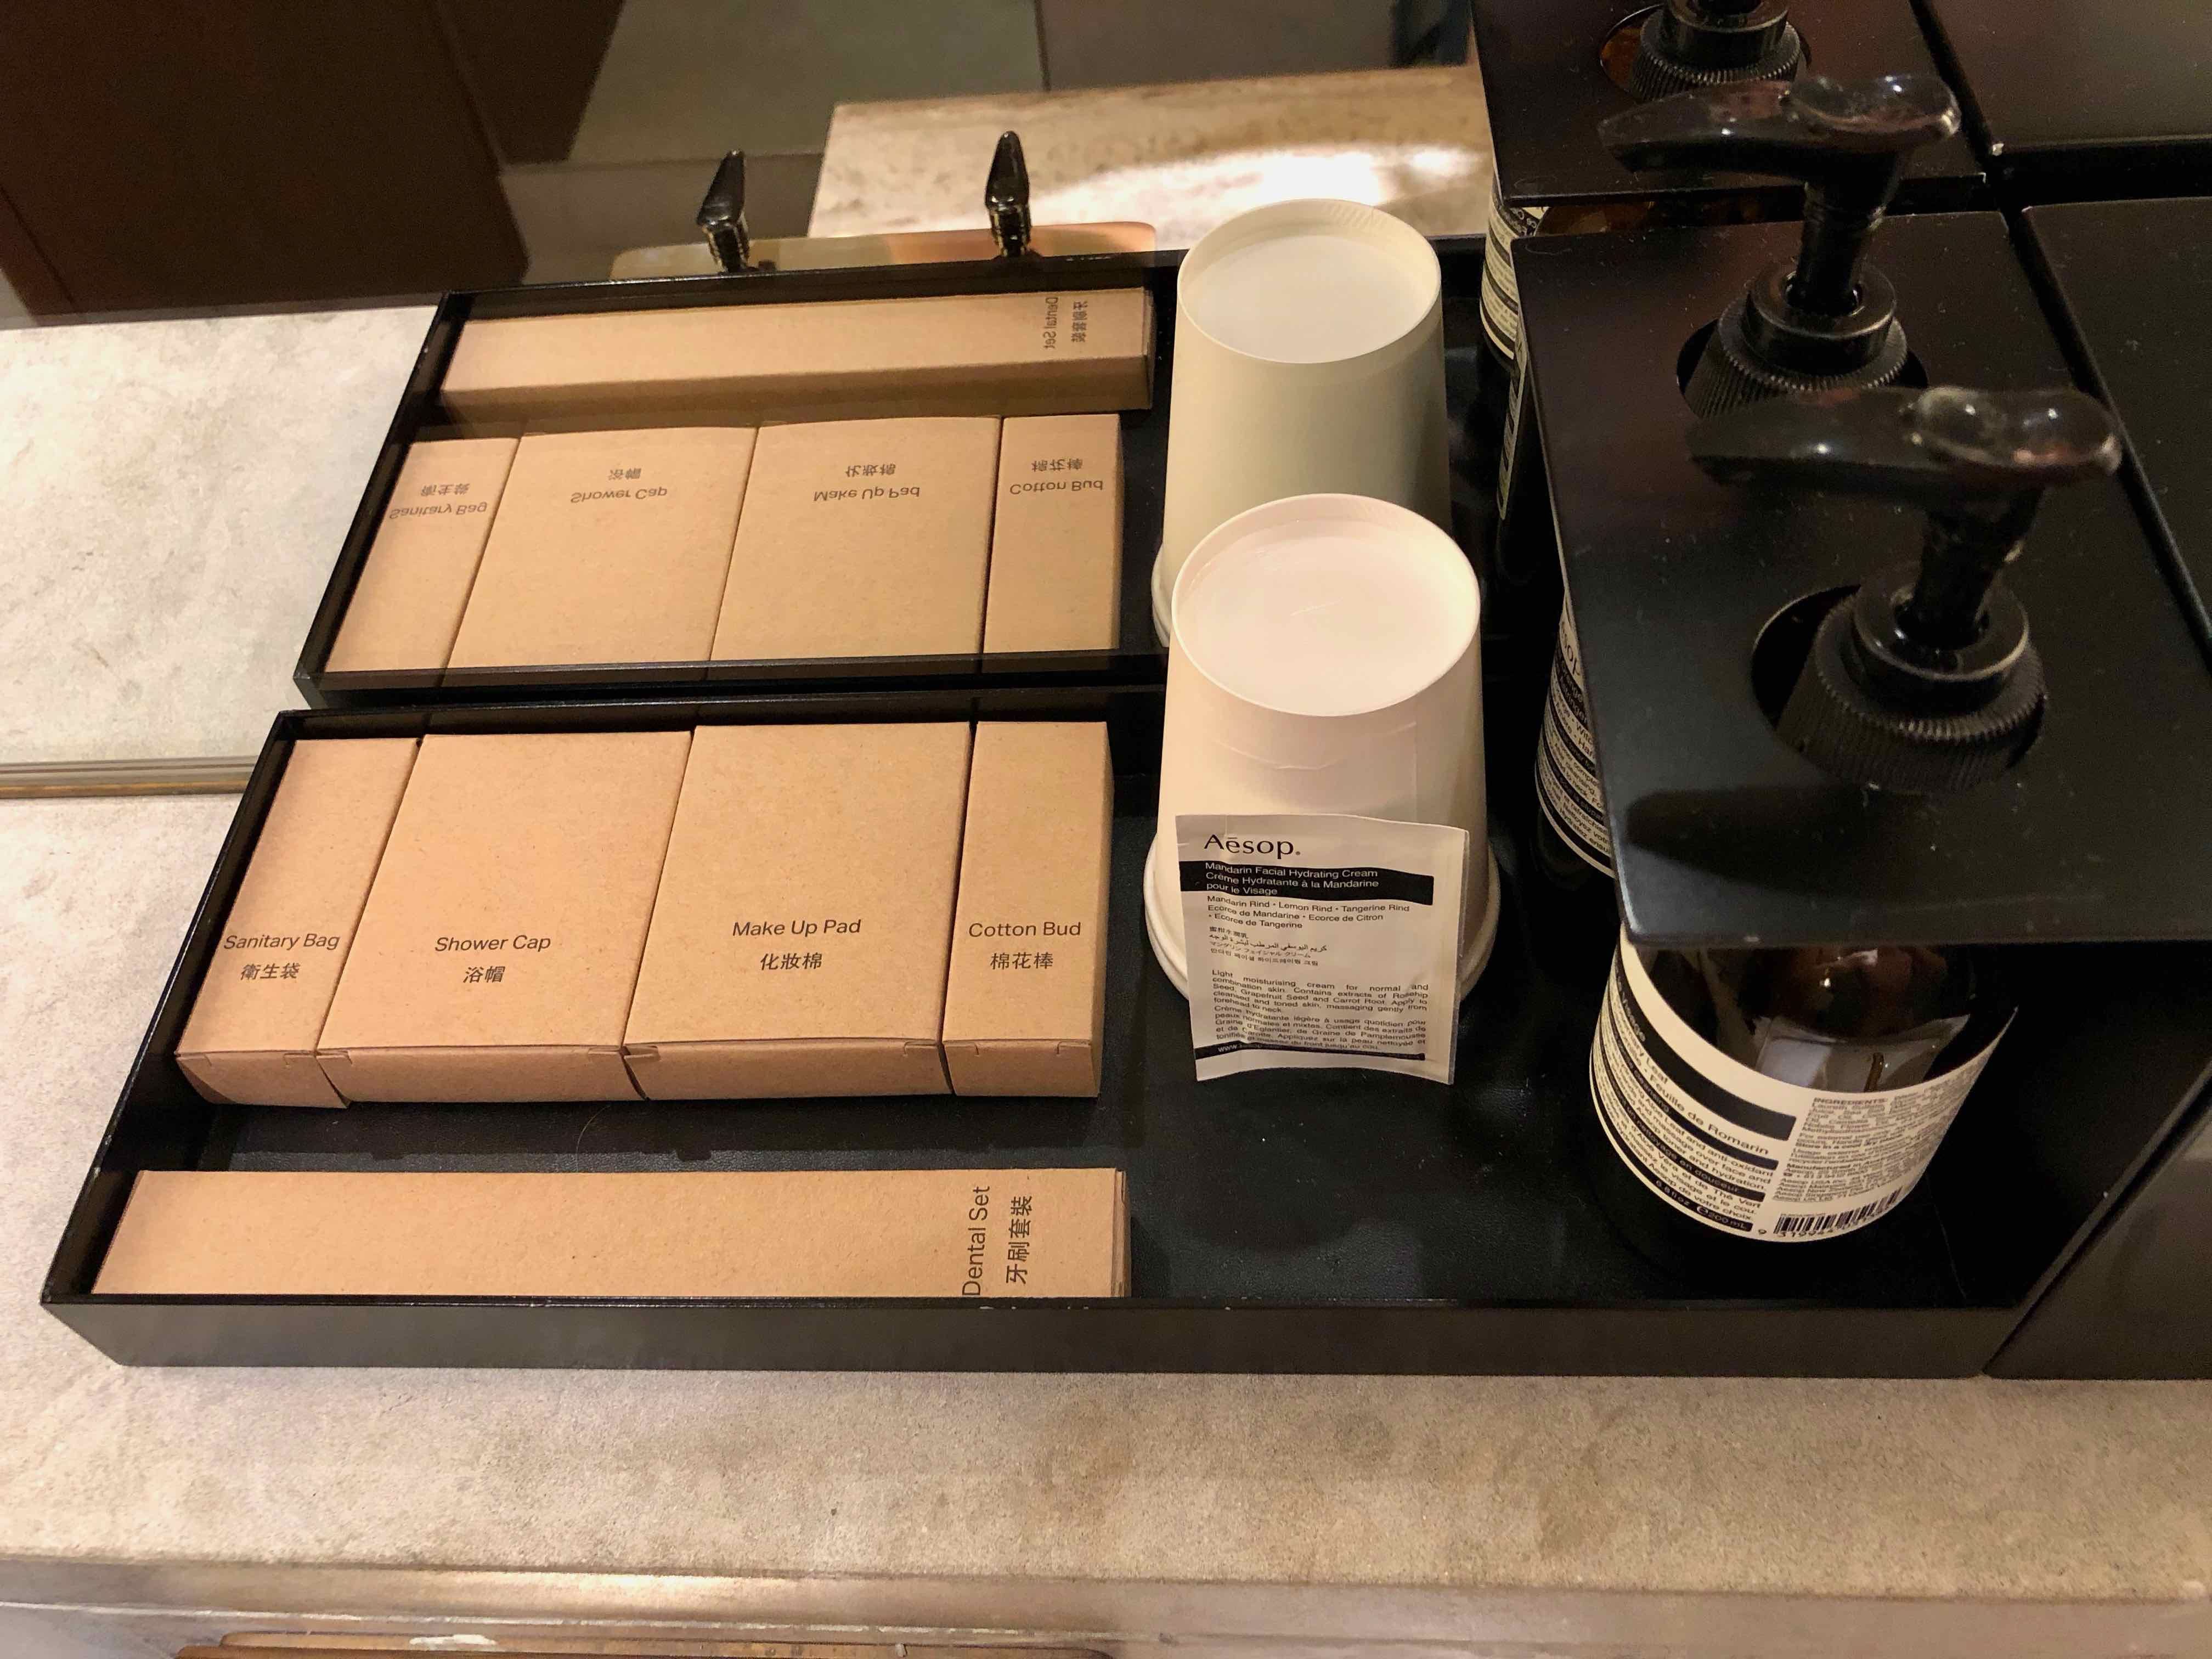 Cathay Pacific The Deck Business Class Lounge Hong Kong Aesop toiletries